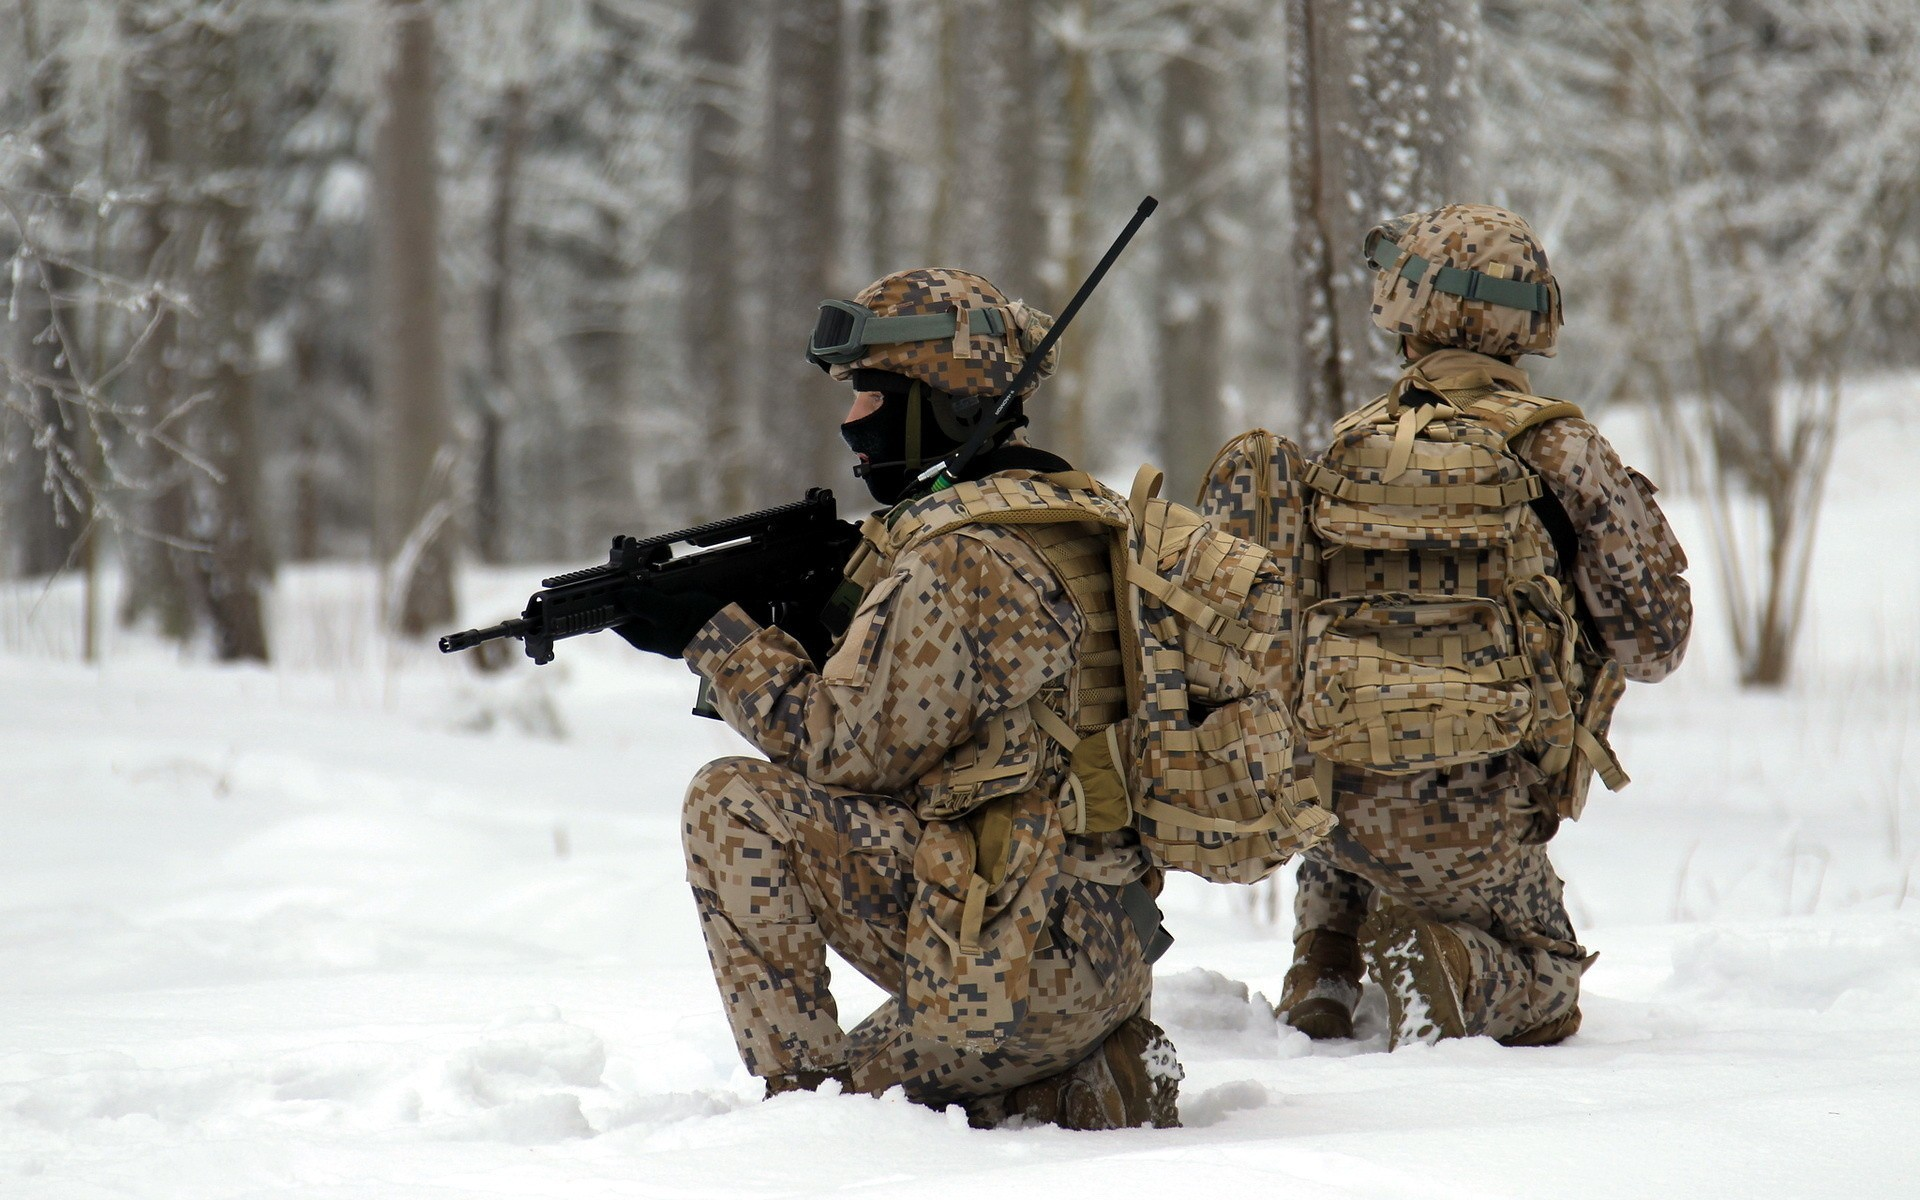 Soldiers snow military wallpaper